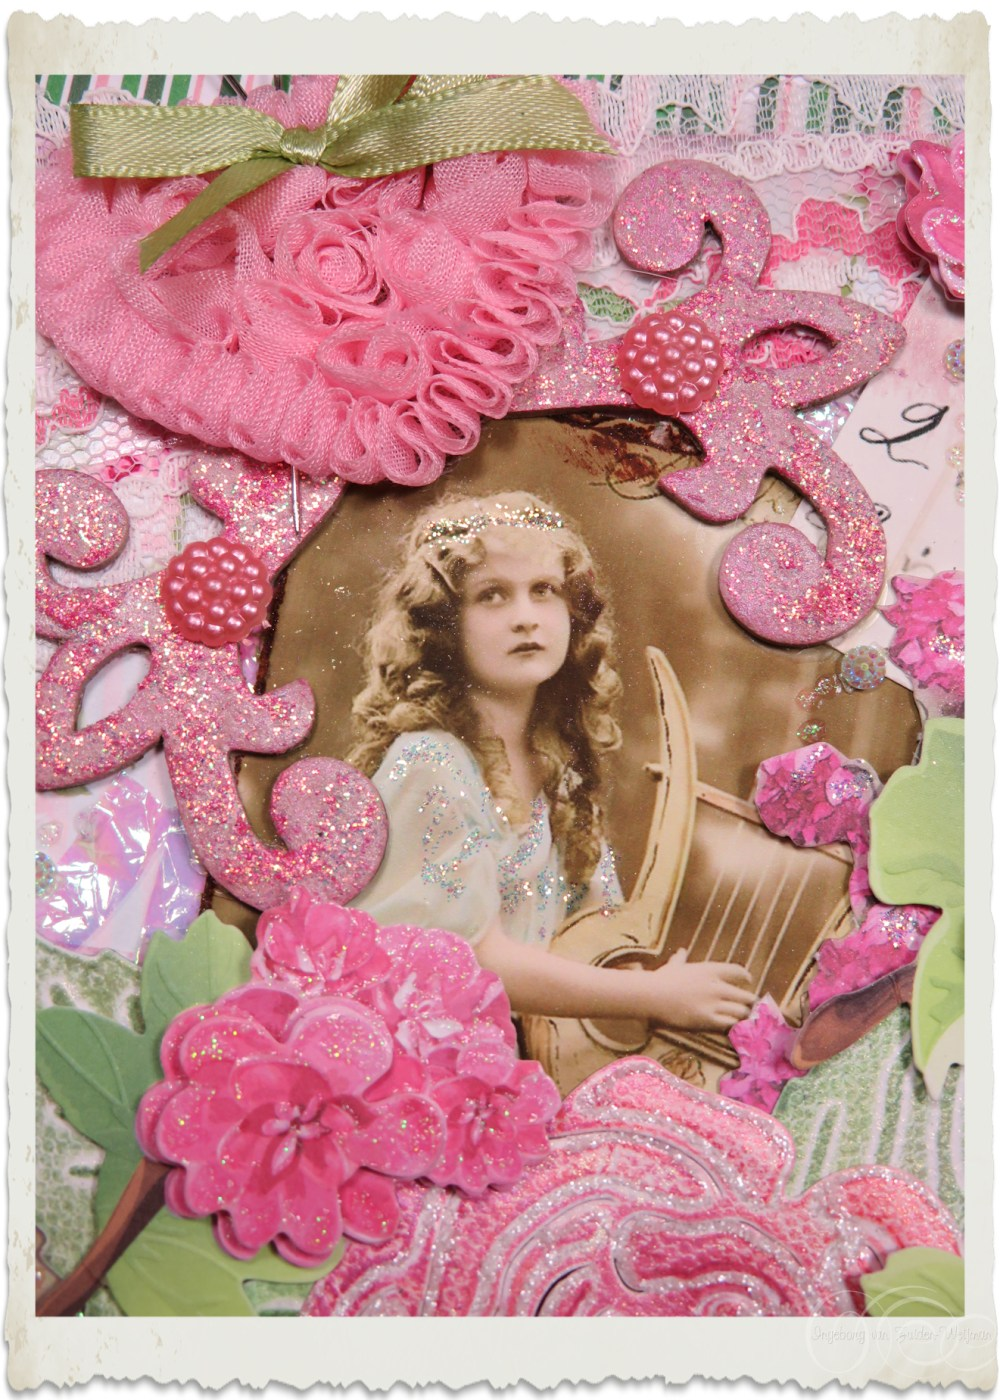 Details of handmade pink vintage Rose card